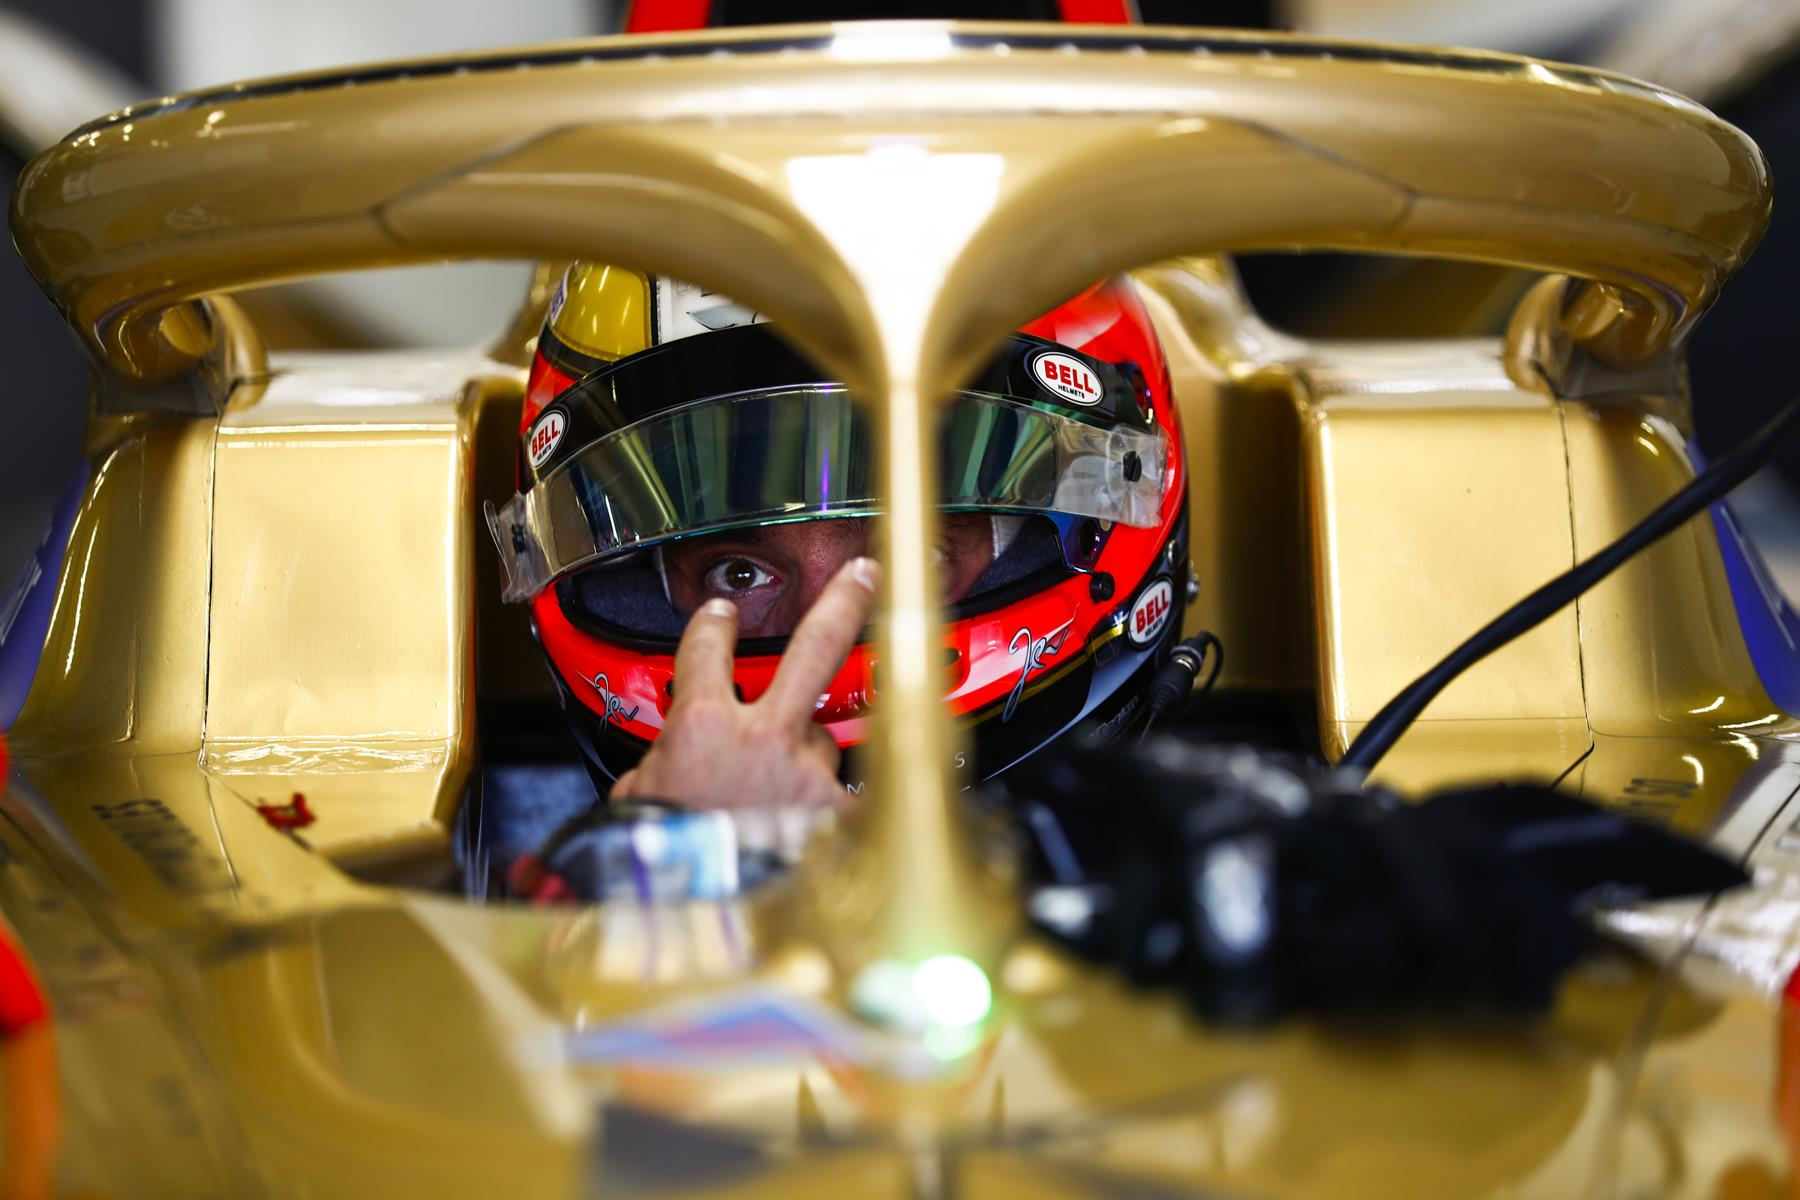 Jean-Eric-Vergne-Watching-in-Cockpit